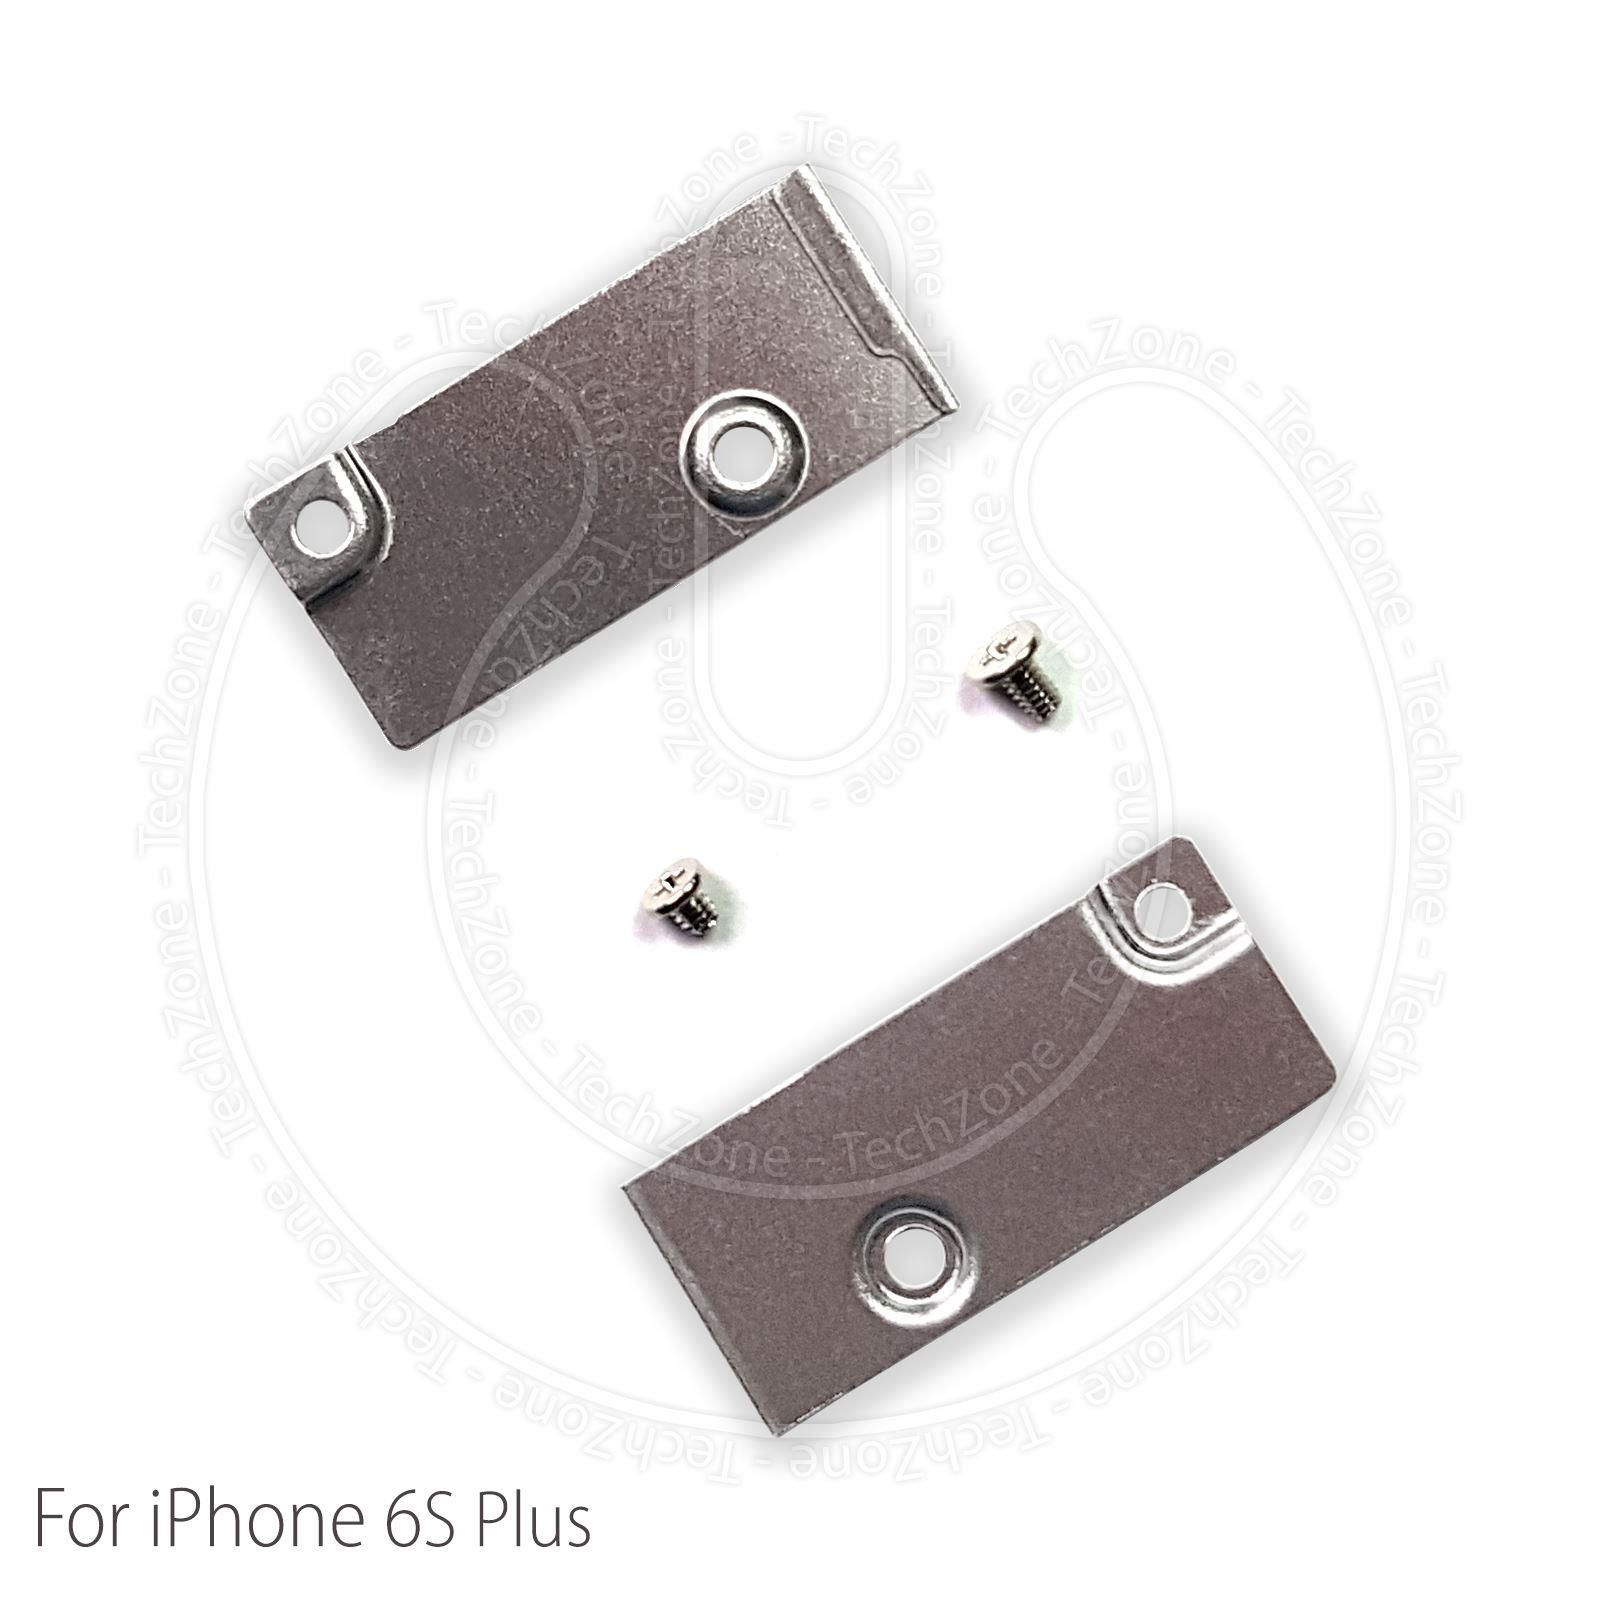 watch 047bb 0a323 Apple iPhone 6S Plus 5.5'' Battery Power Connector Metal Bracket Shield  Cover Plate & Screws